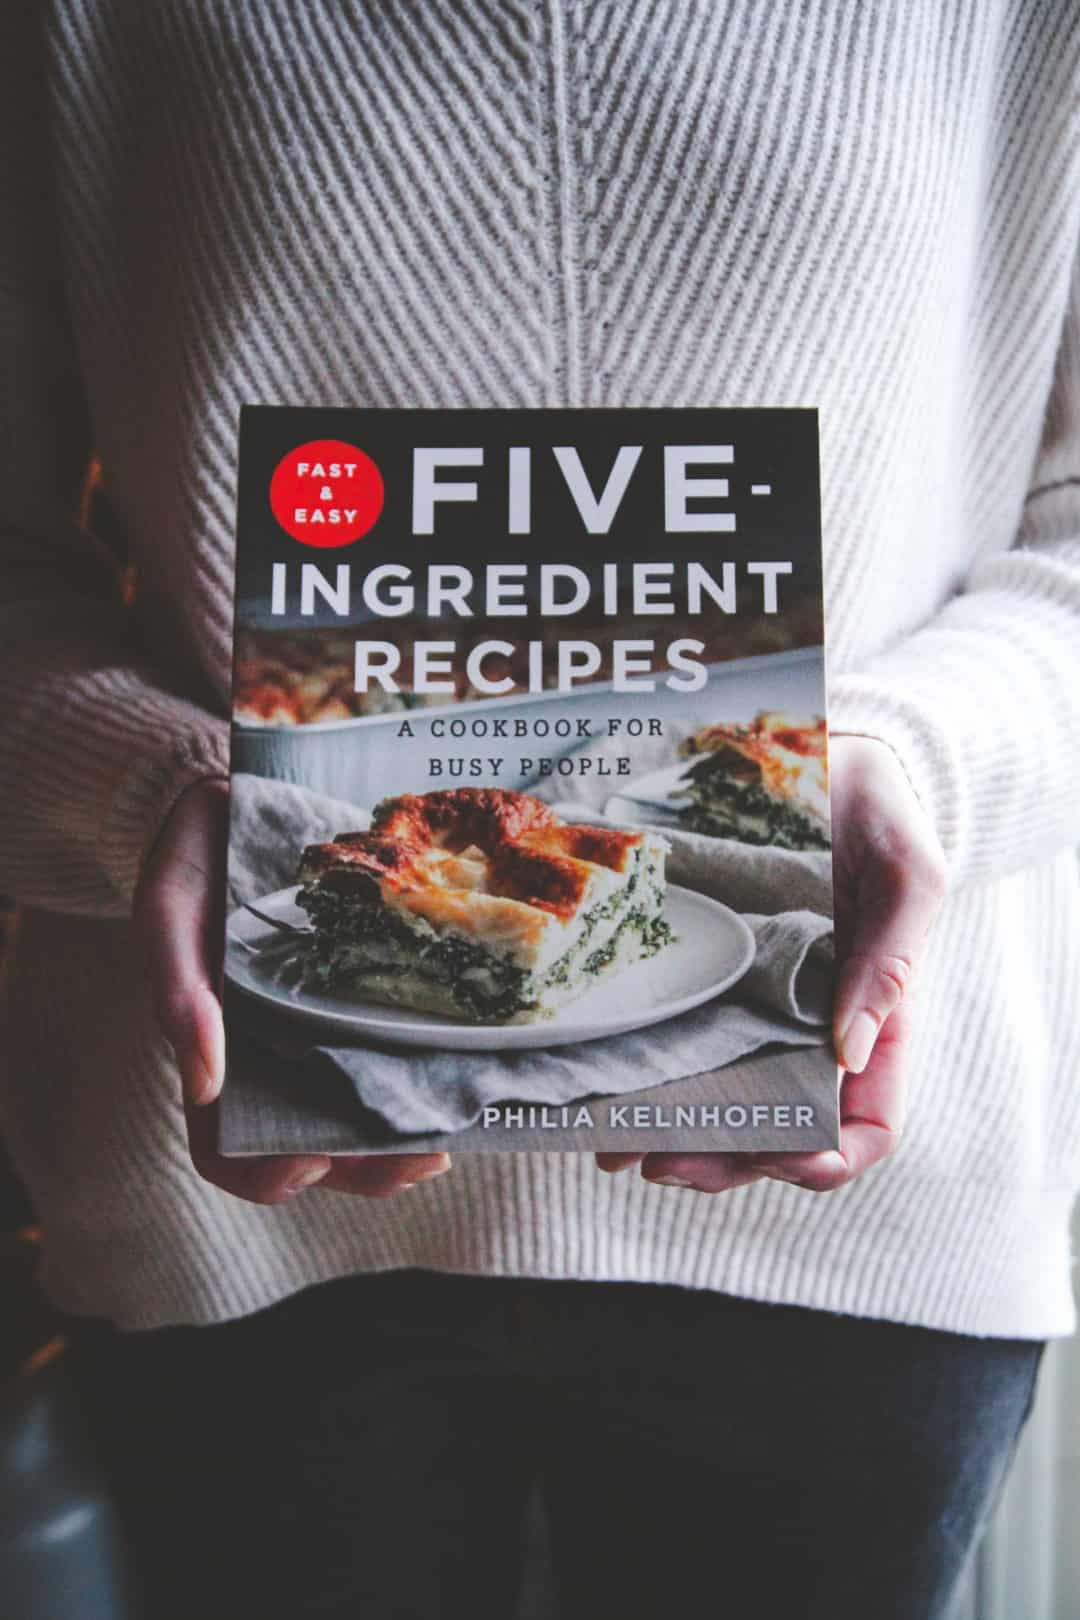 Fast and Easy Five-ingredient recipes by Philia Kelnhofer cookbook